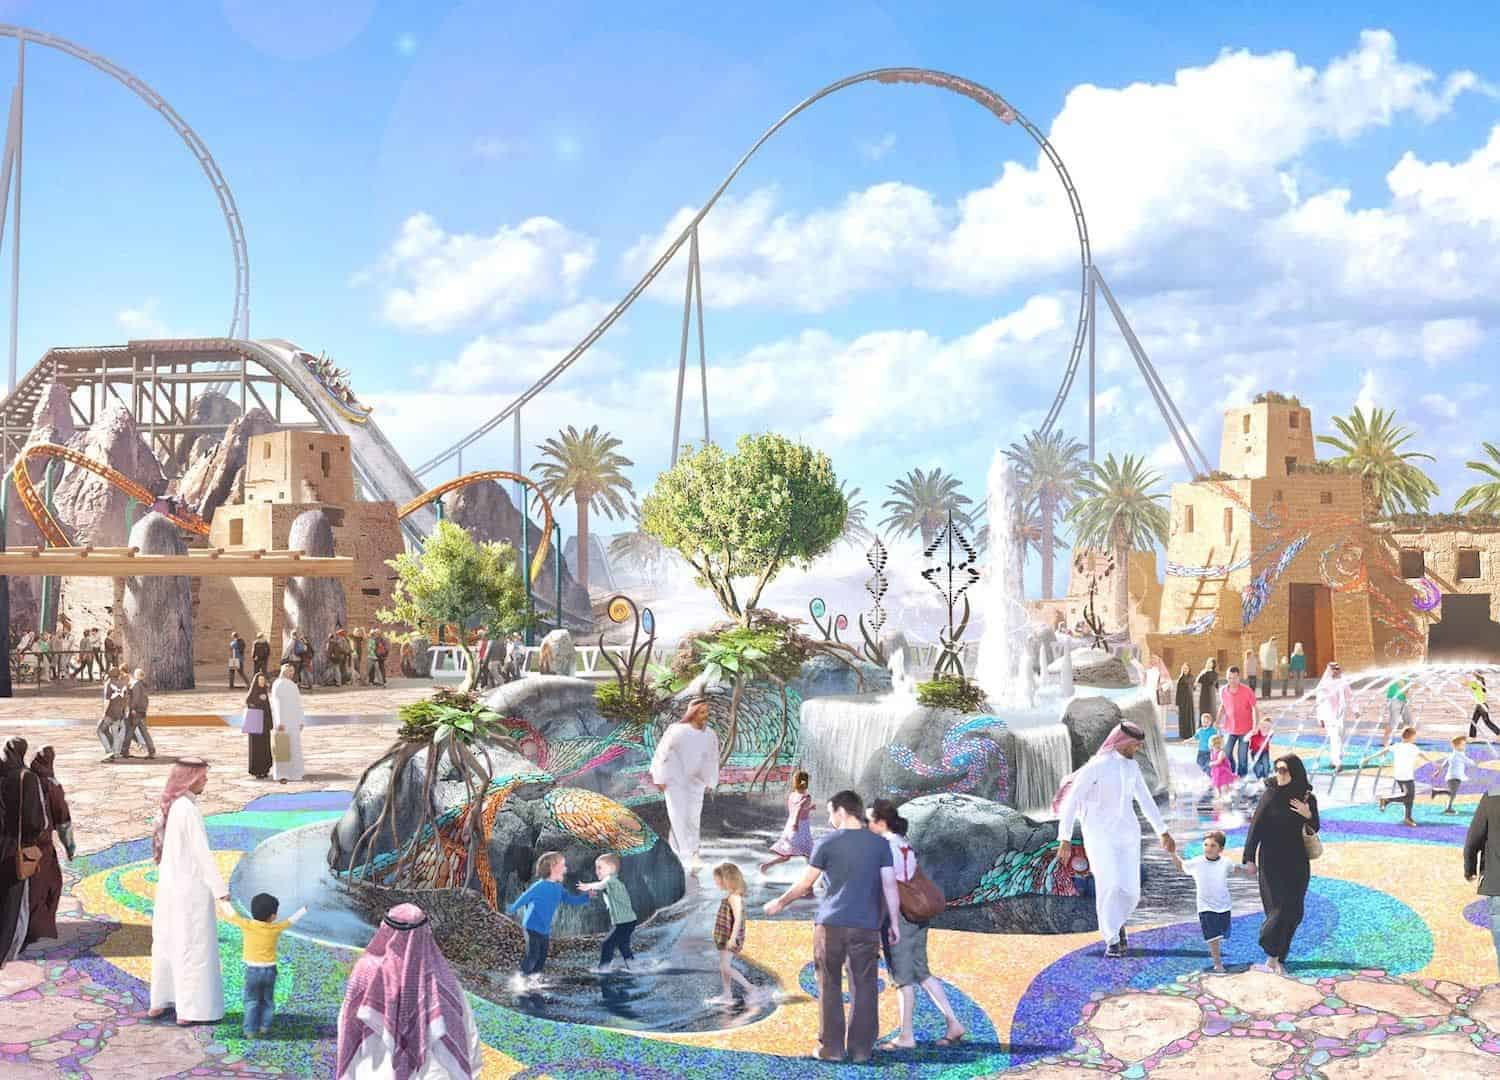 Worlds-fastest-roller-coaster-to-open-in-Saudi-Arabia-in-2023